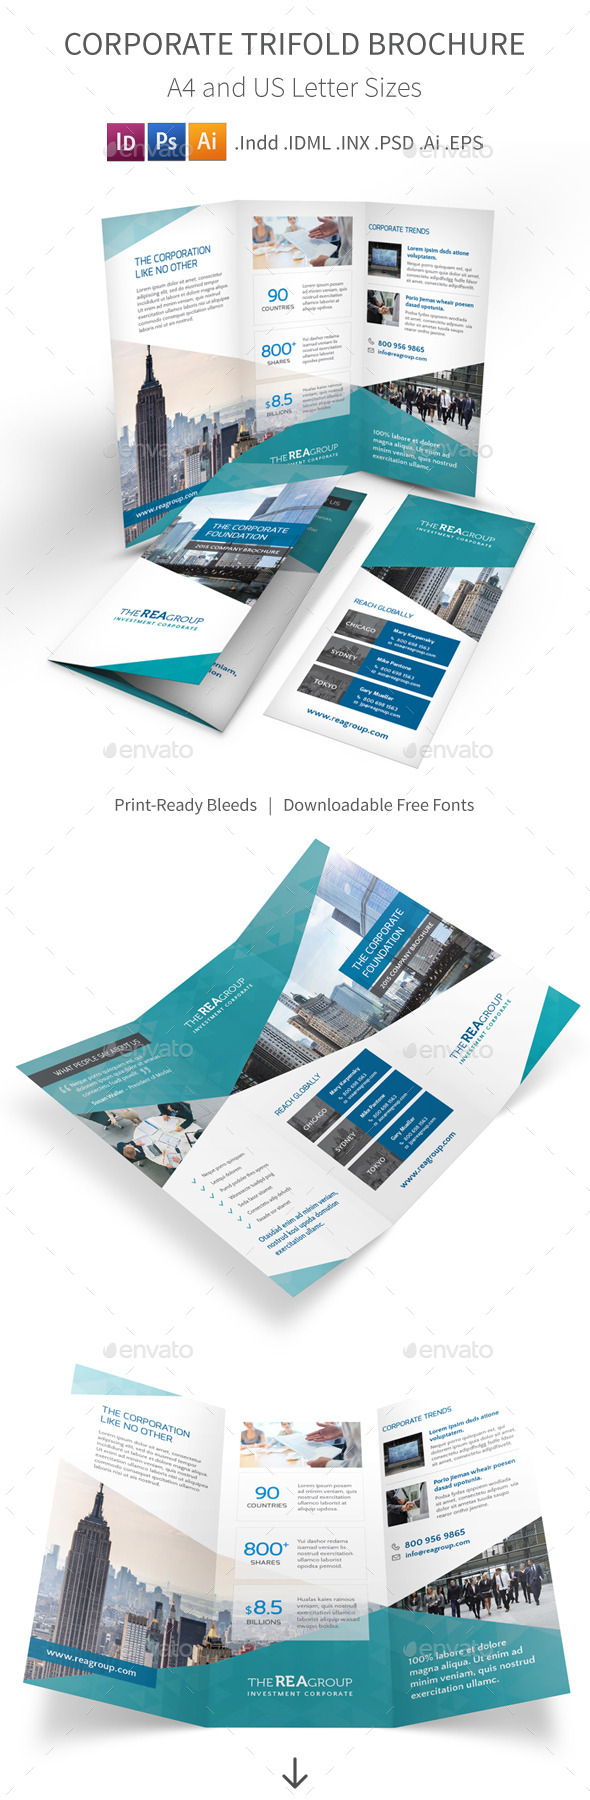 GraphicRiver Corporate Trifold Brochure 11023834